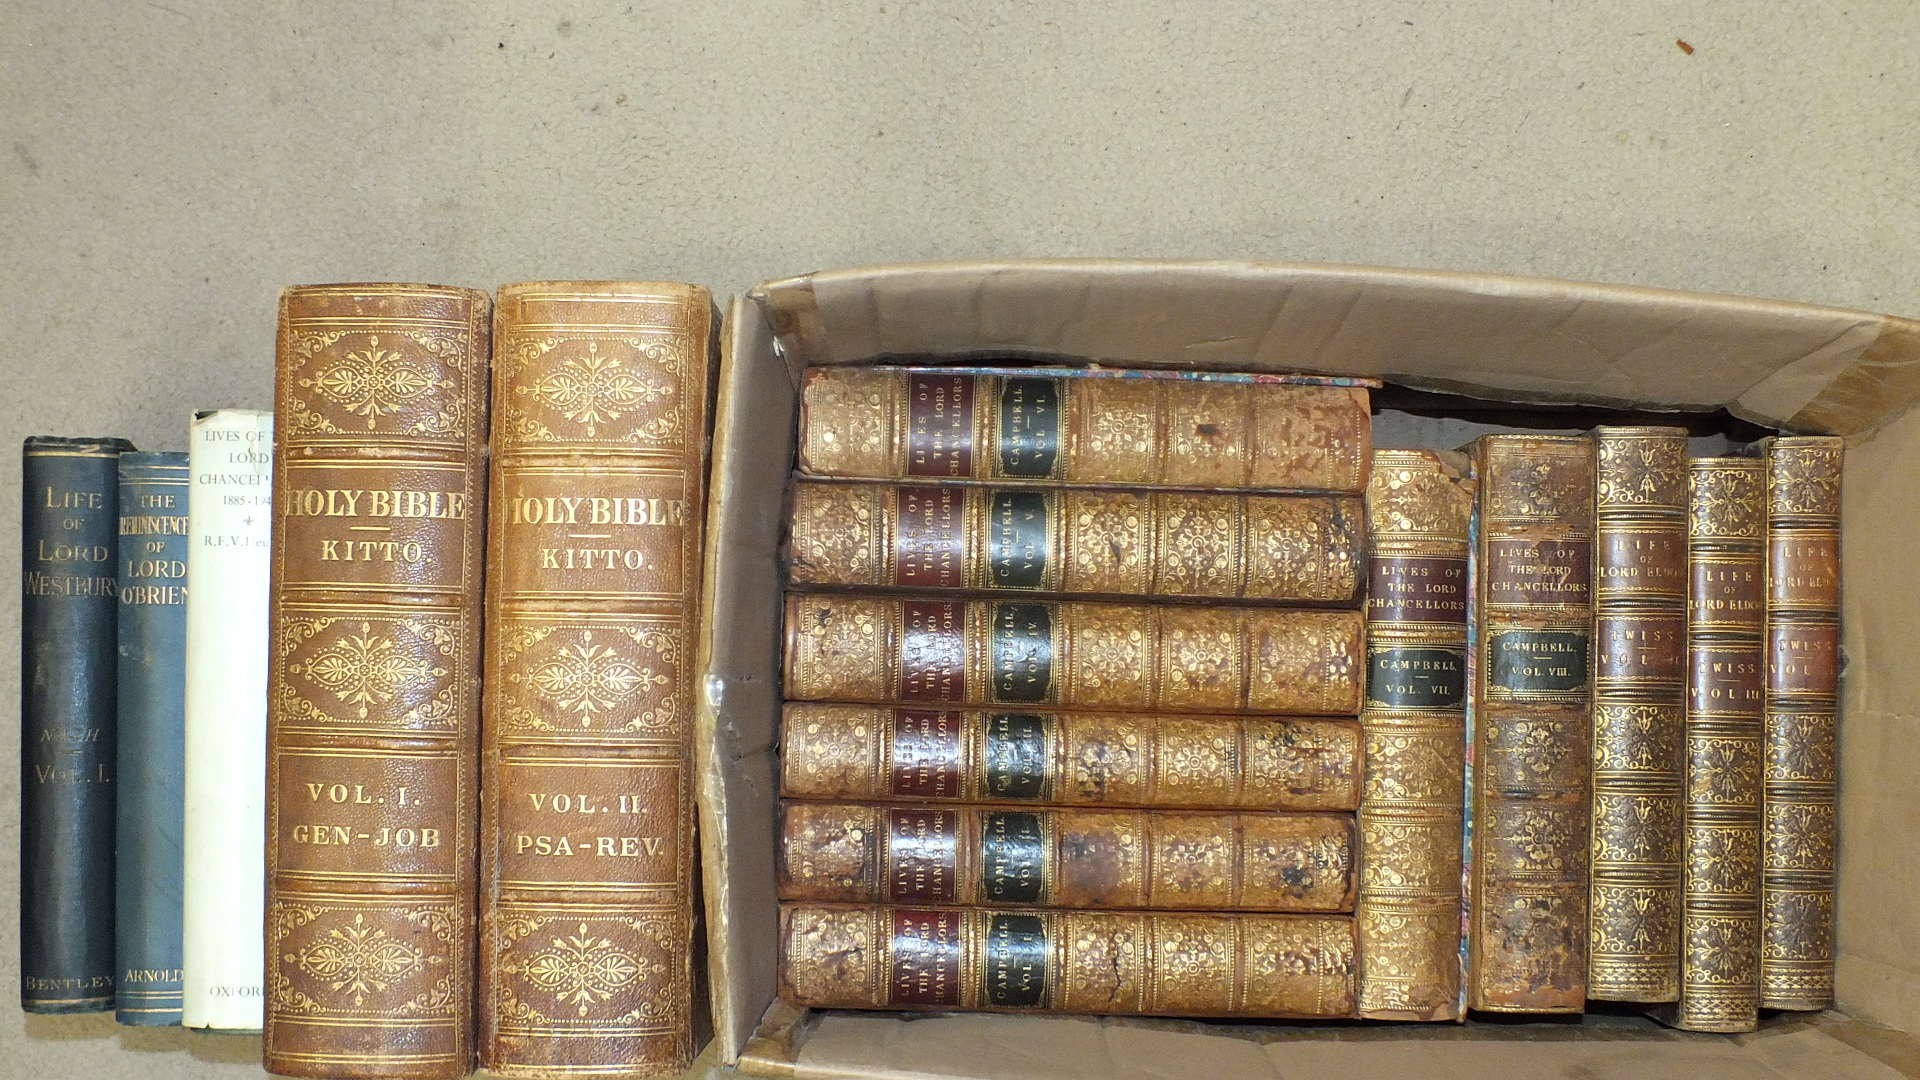 The Illustrated Family Bible, ed: John Kitto, 2 vols, eng plts. cf gt, 4to, nd; Twiss (Horace),